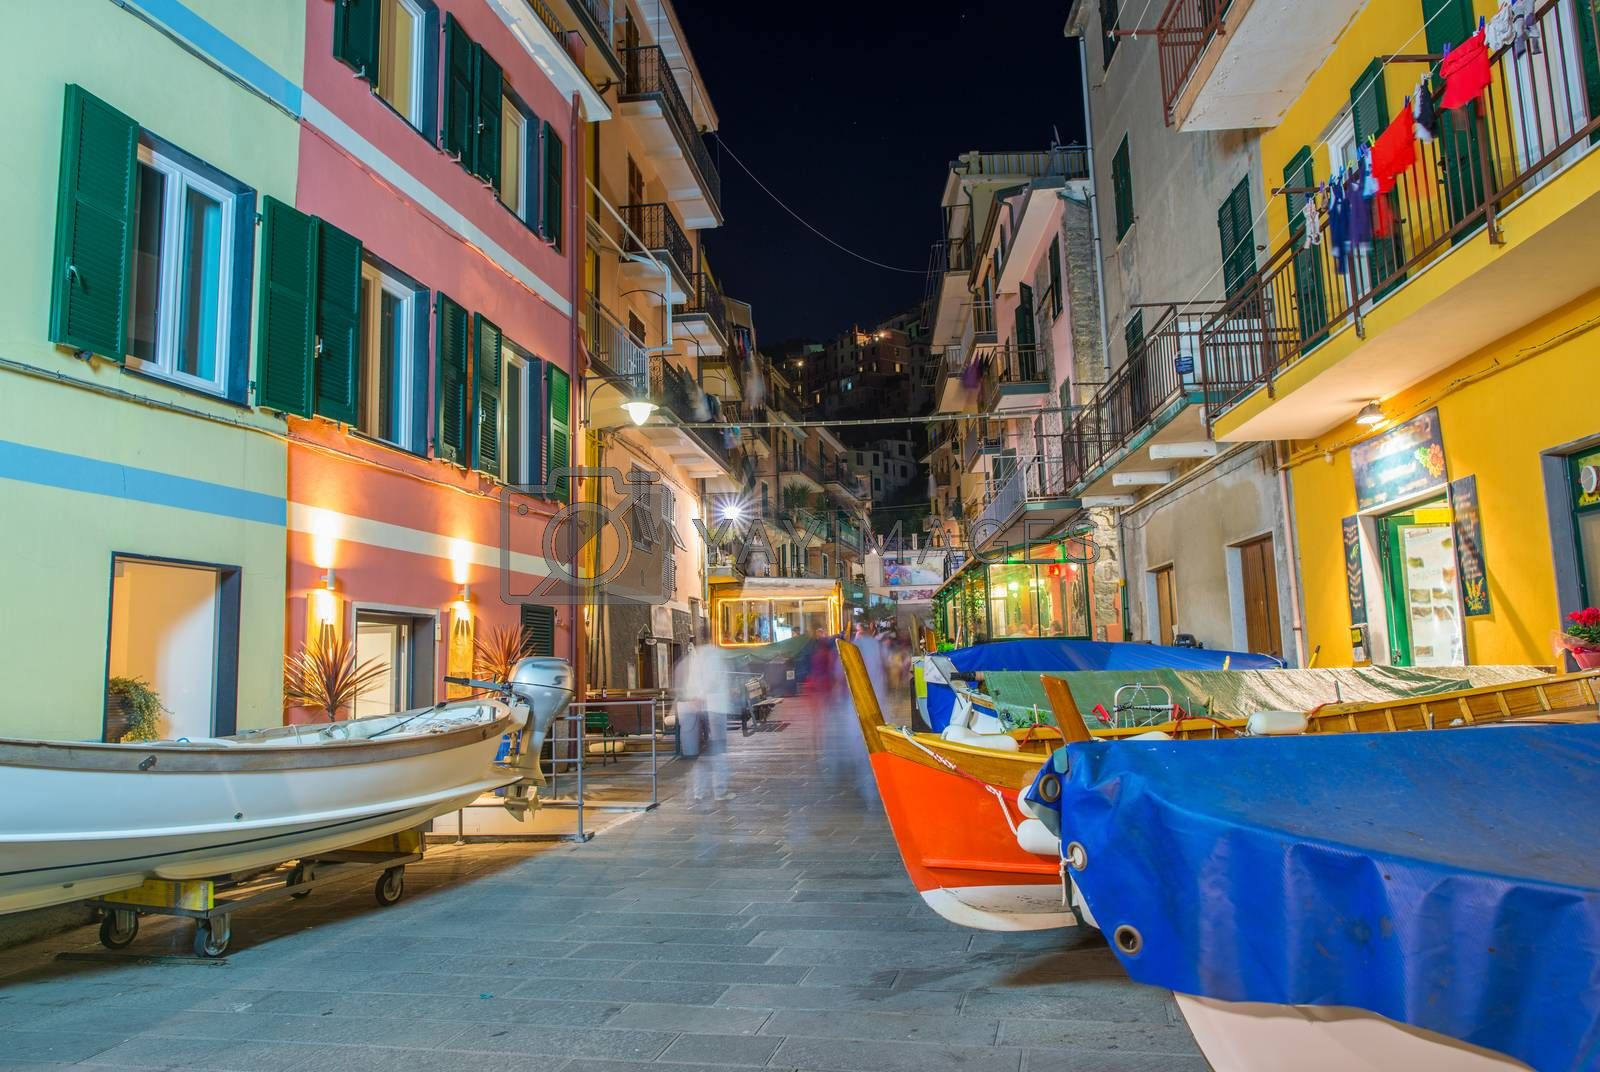 Boats parked in the middle of Manarola Town, Cinque Terre by jovannig